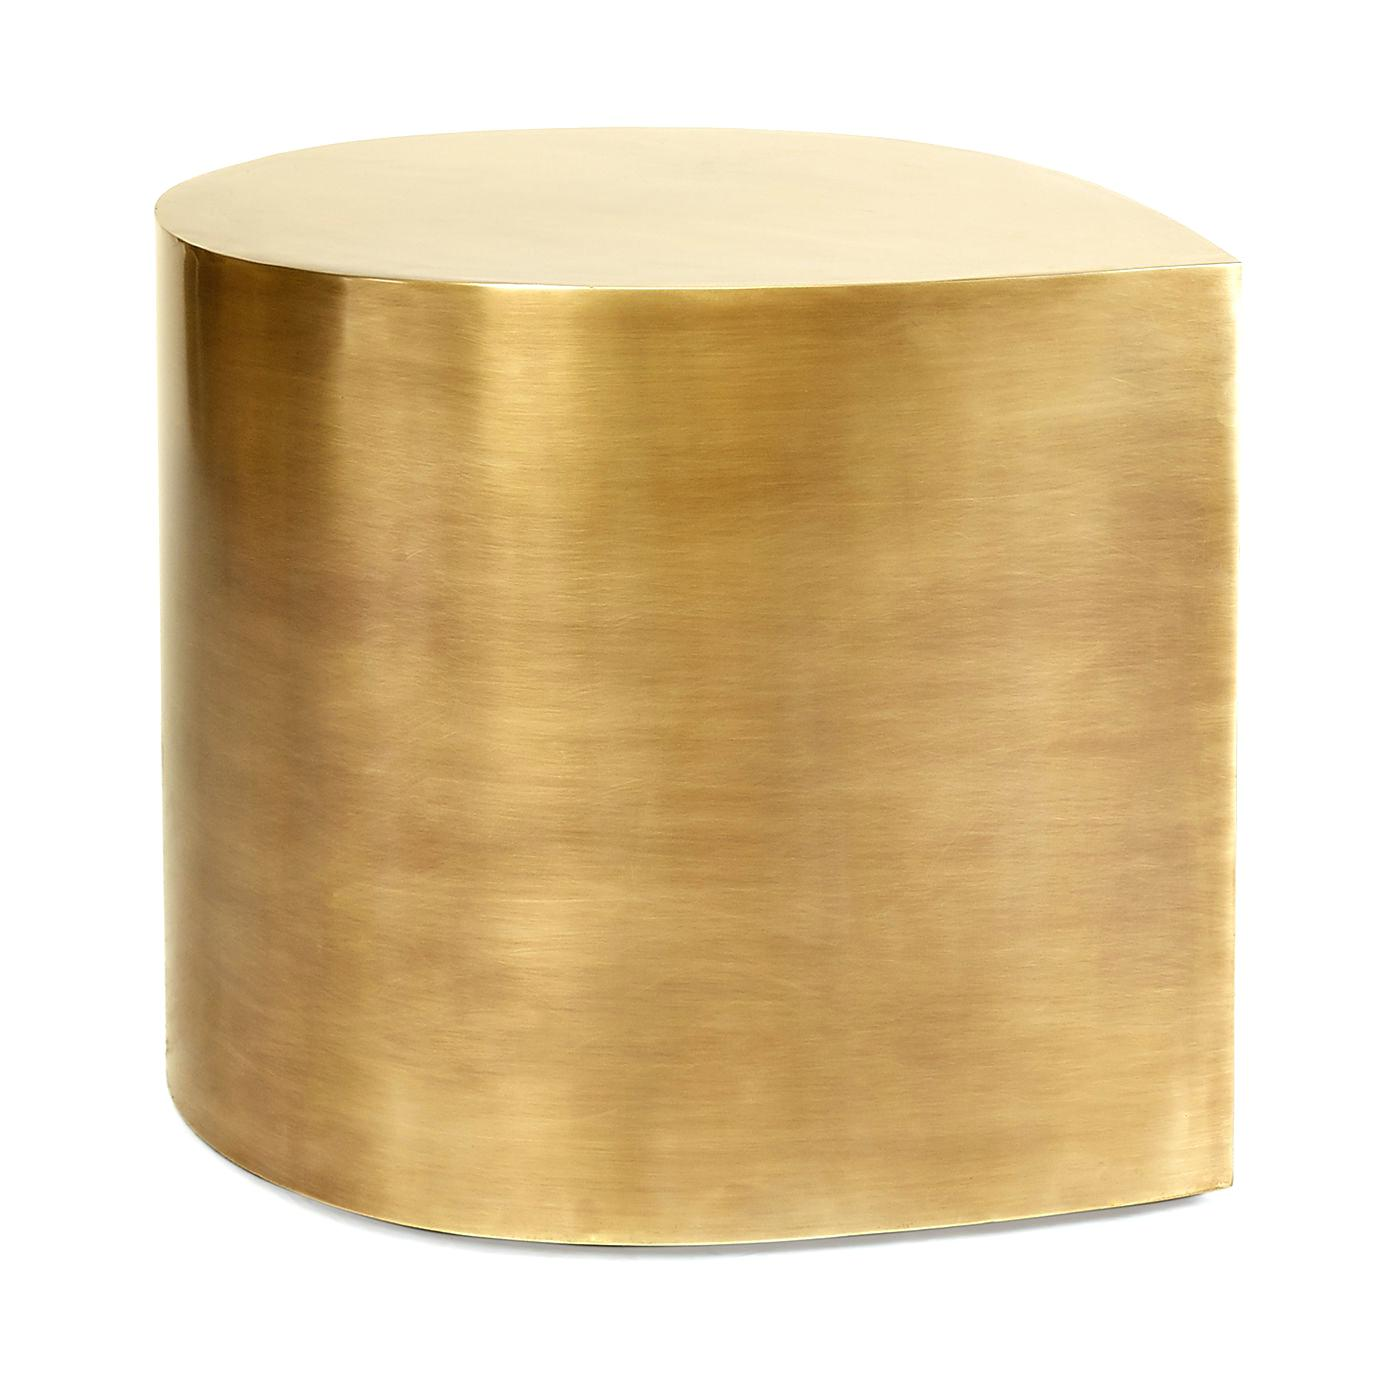 gold accent table purchext brass teardrop modern furniture jonathan adler side amp tables target rose montrez mid century leather sofa drum rack ceramic patio ikea dale tiffany